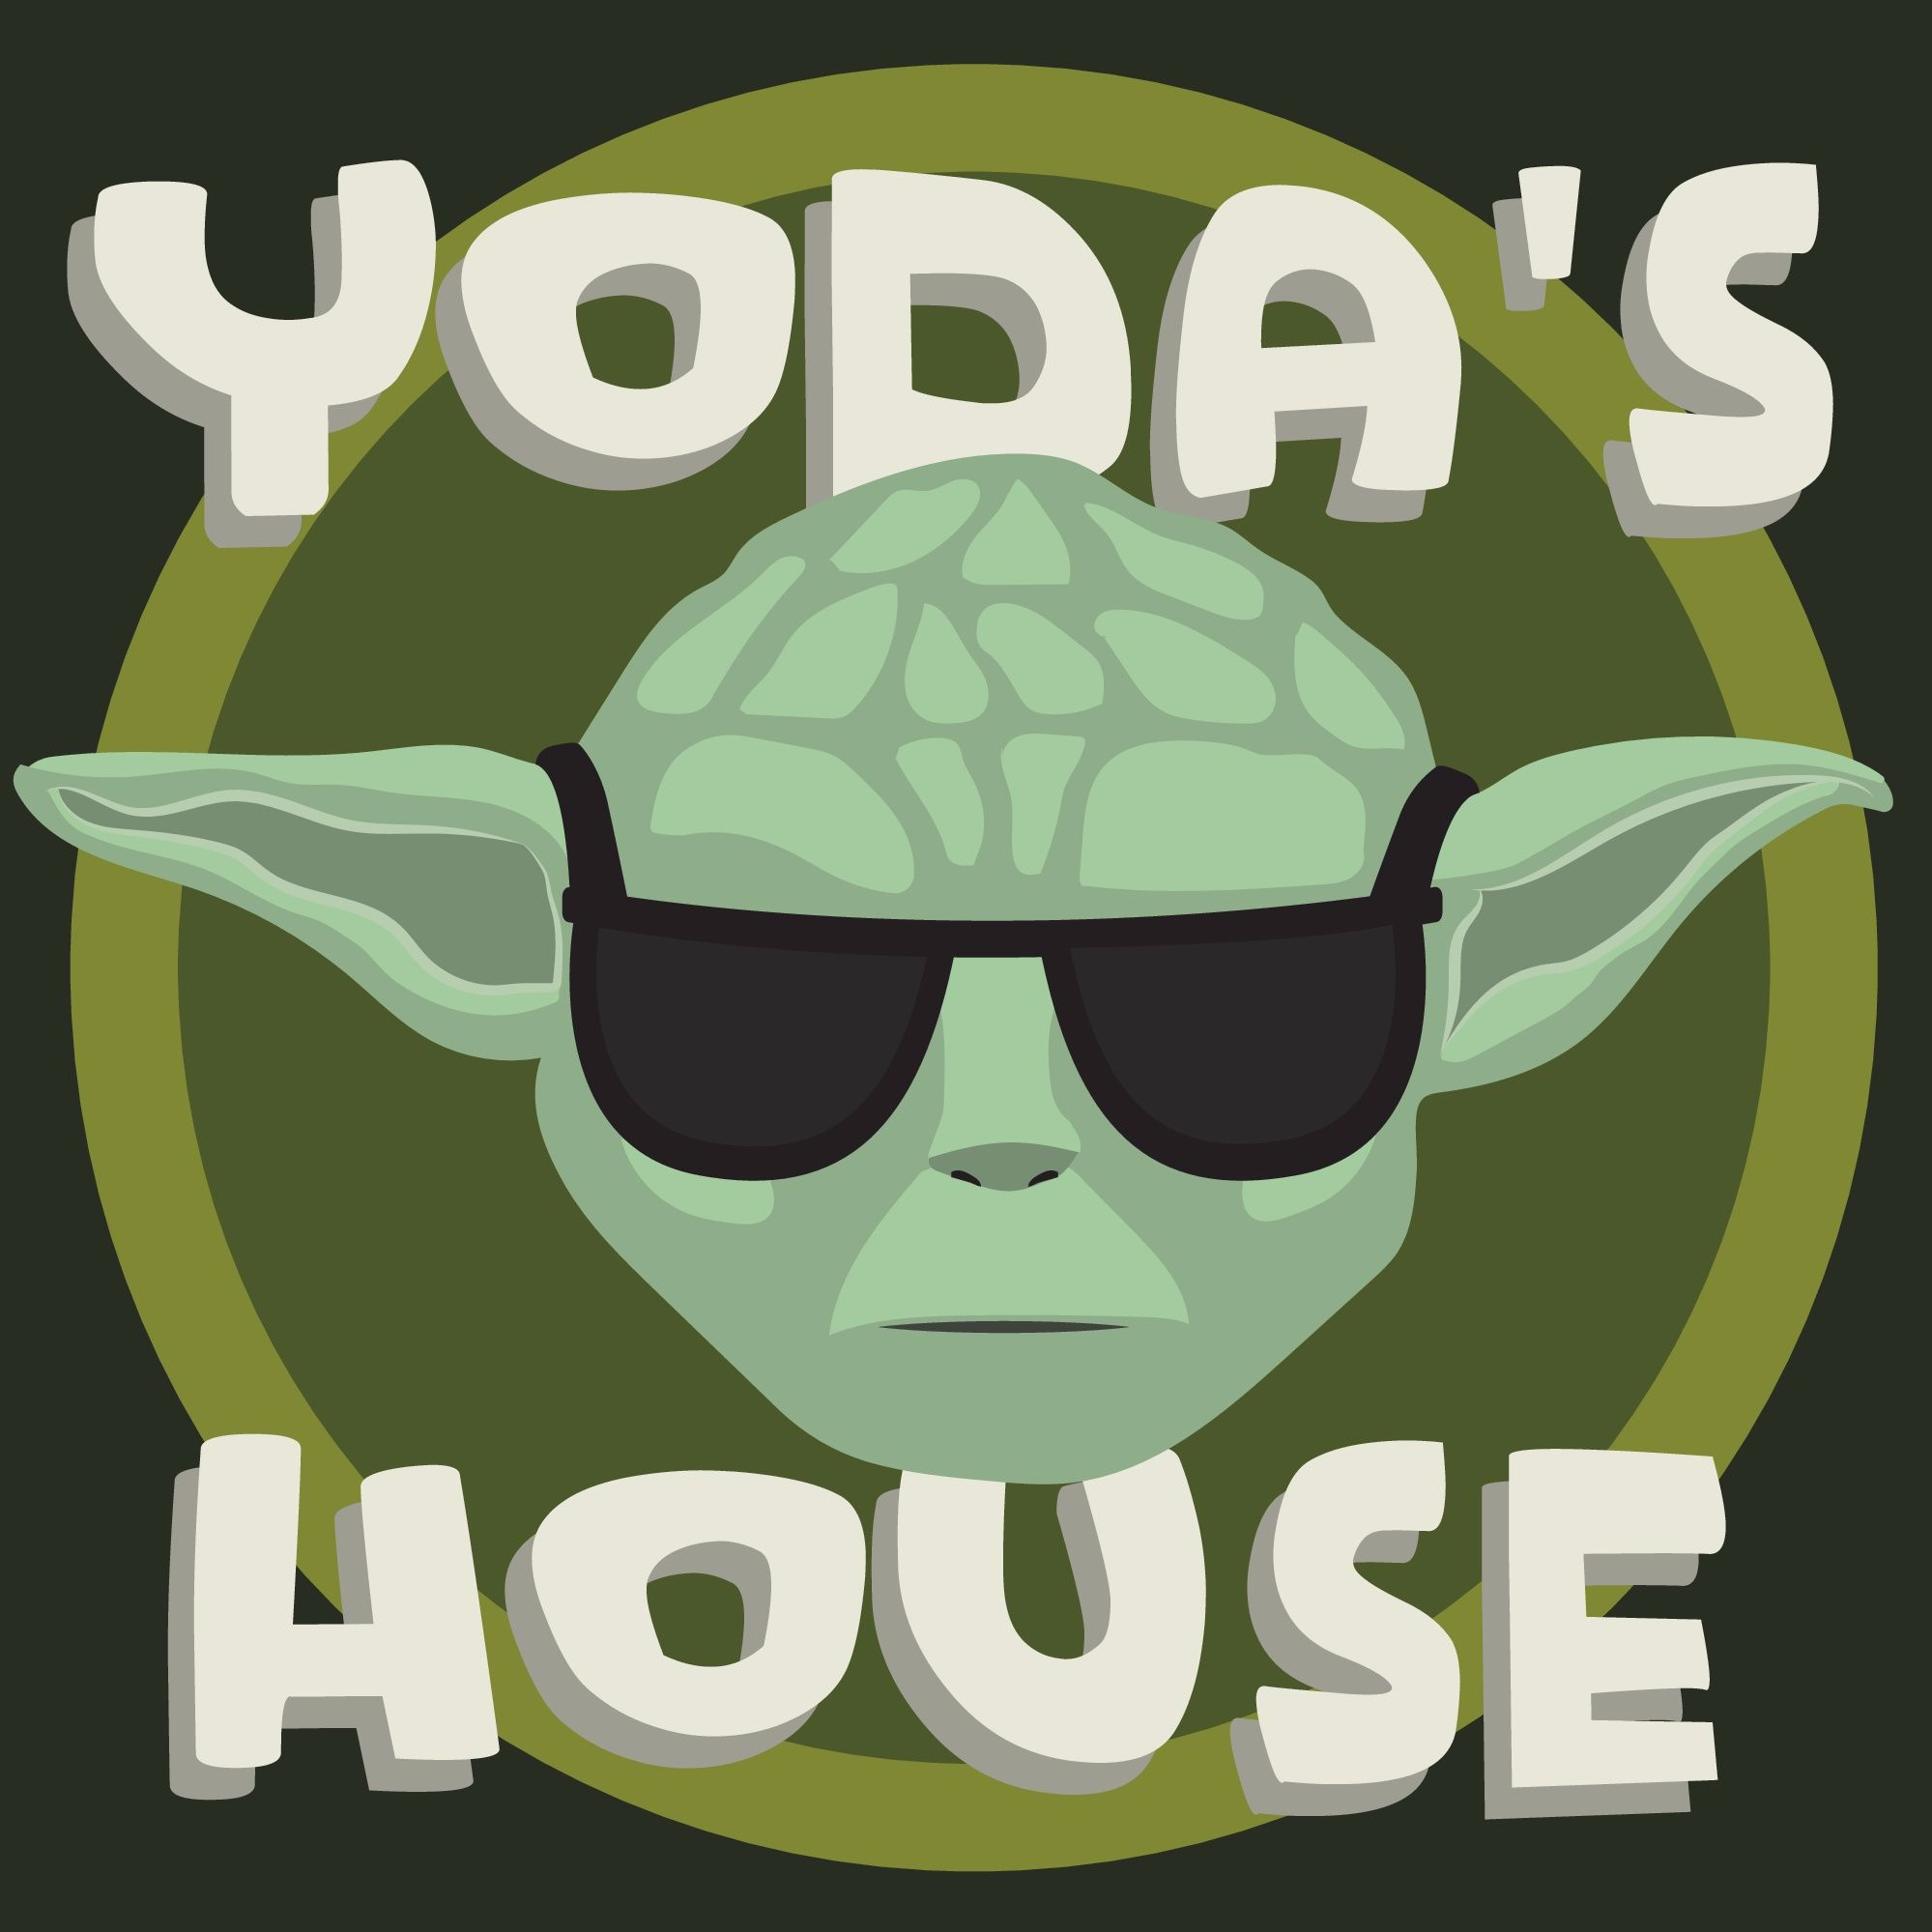 Anevo Don T Shoot Me Down yoda's house's stream on soundcloud - hear the world's